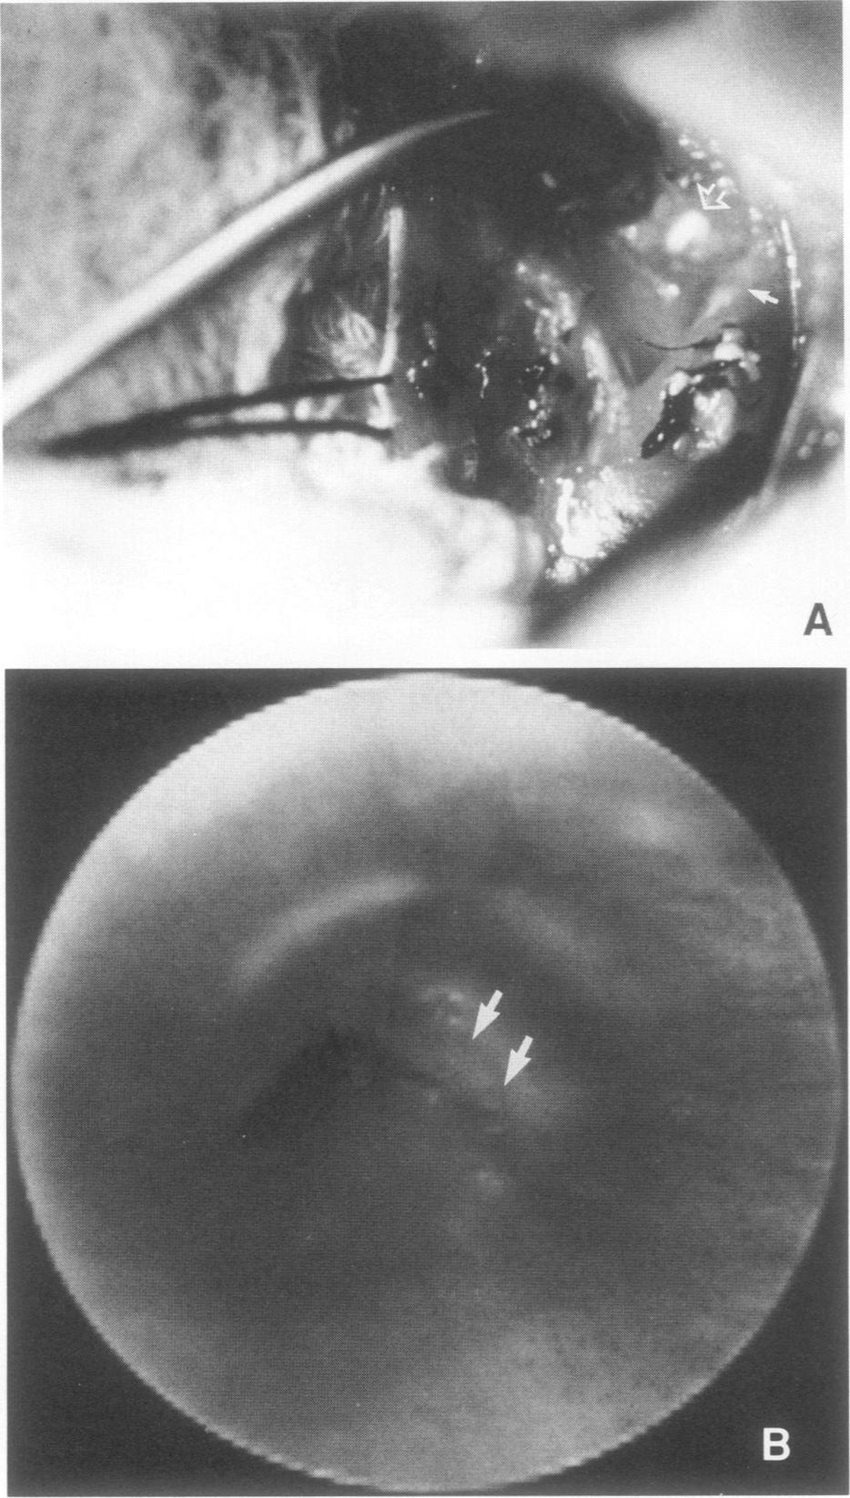 hight resolution of a intraoperative photograph of the esophageal perforation download scientific diagram